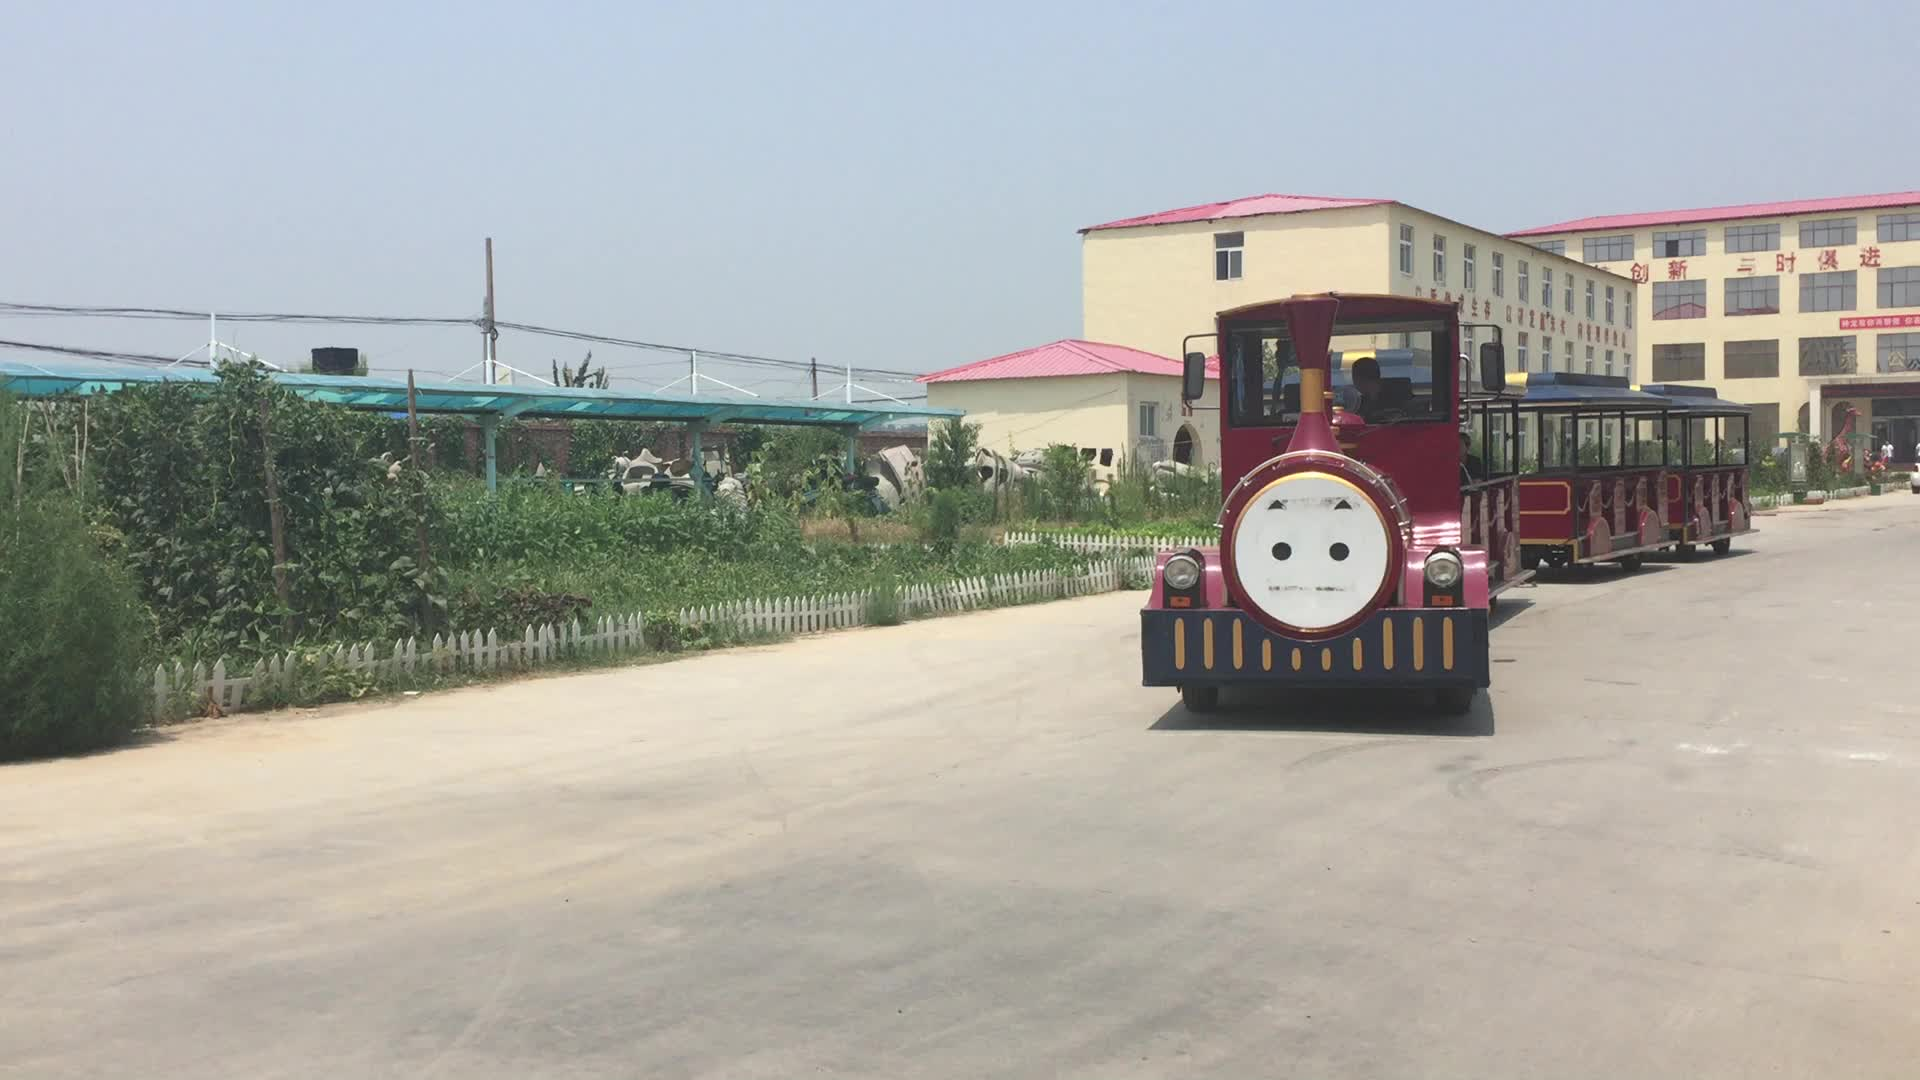 Ho Scale Model Train Used Amusement Park Trackless Train For Sale At  Wholesale Price - Buy Ho Scale Model Train,Used Amusement Park Trains For